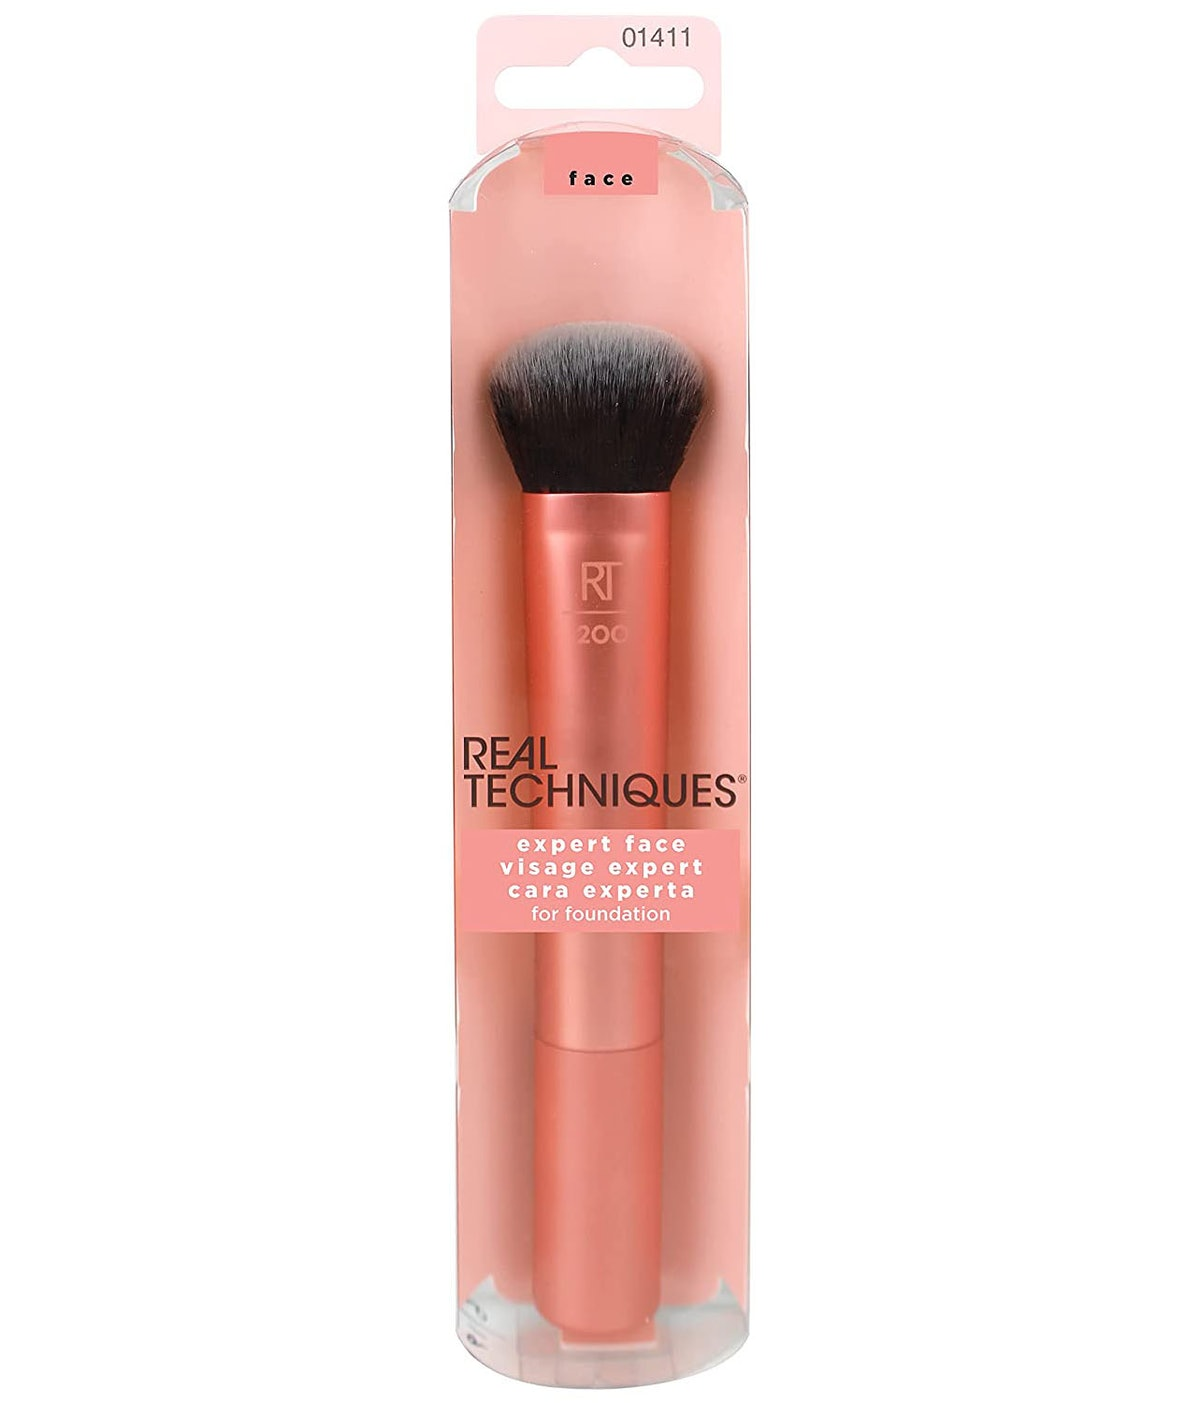 Real Techniques Professional Foundation Makeup Brush